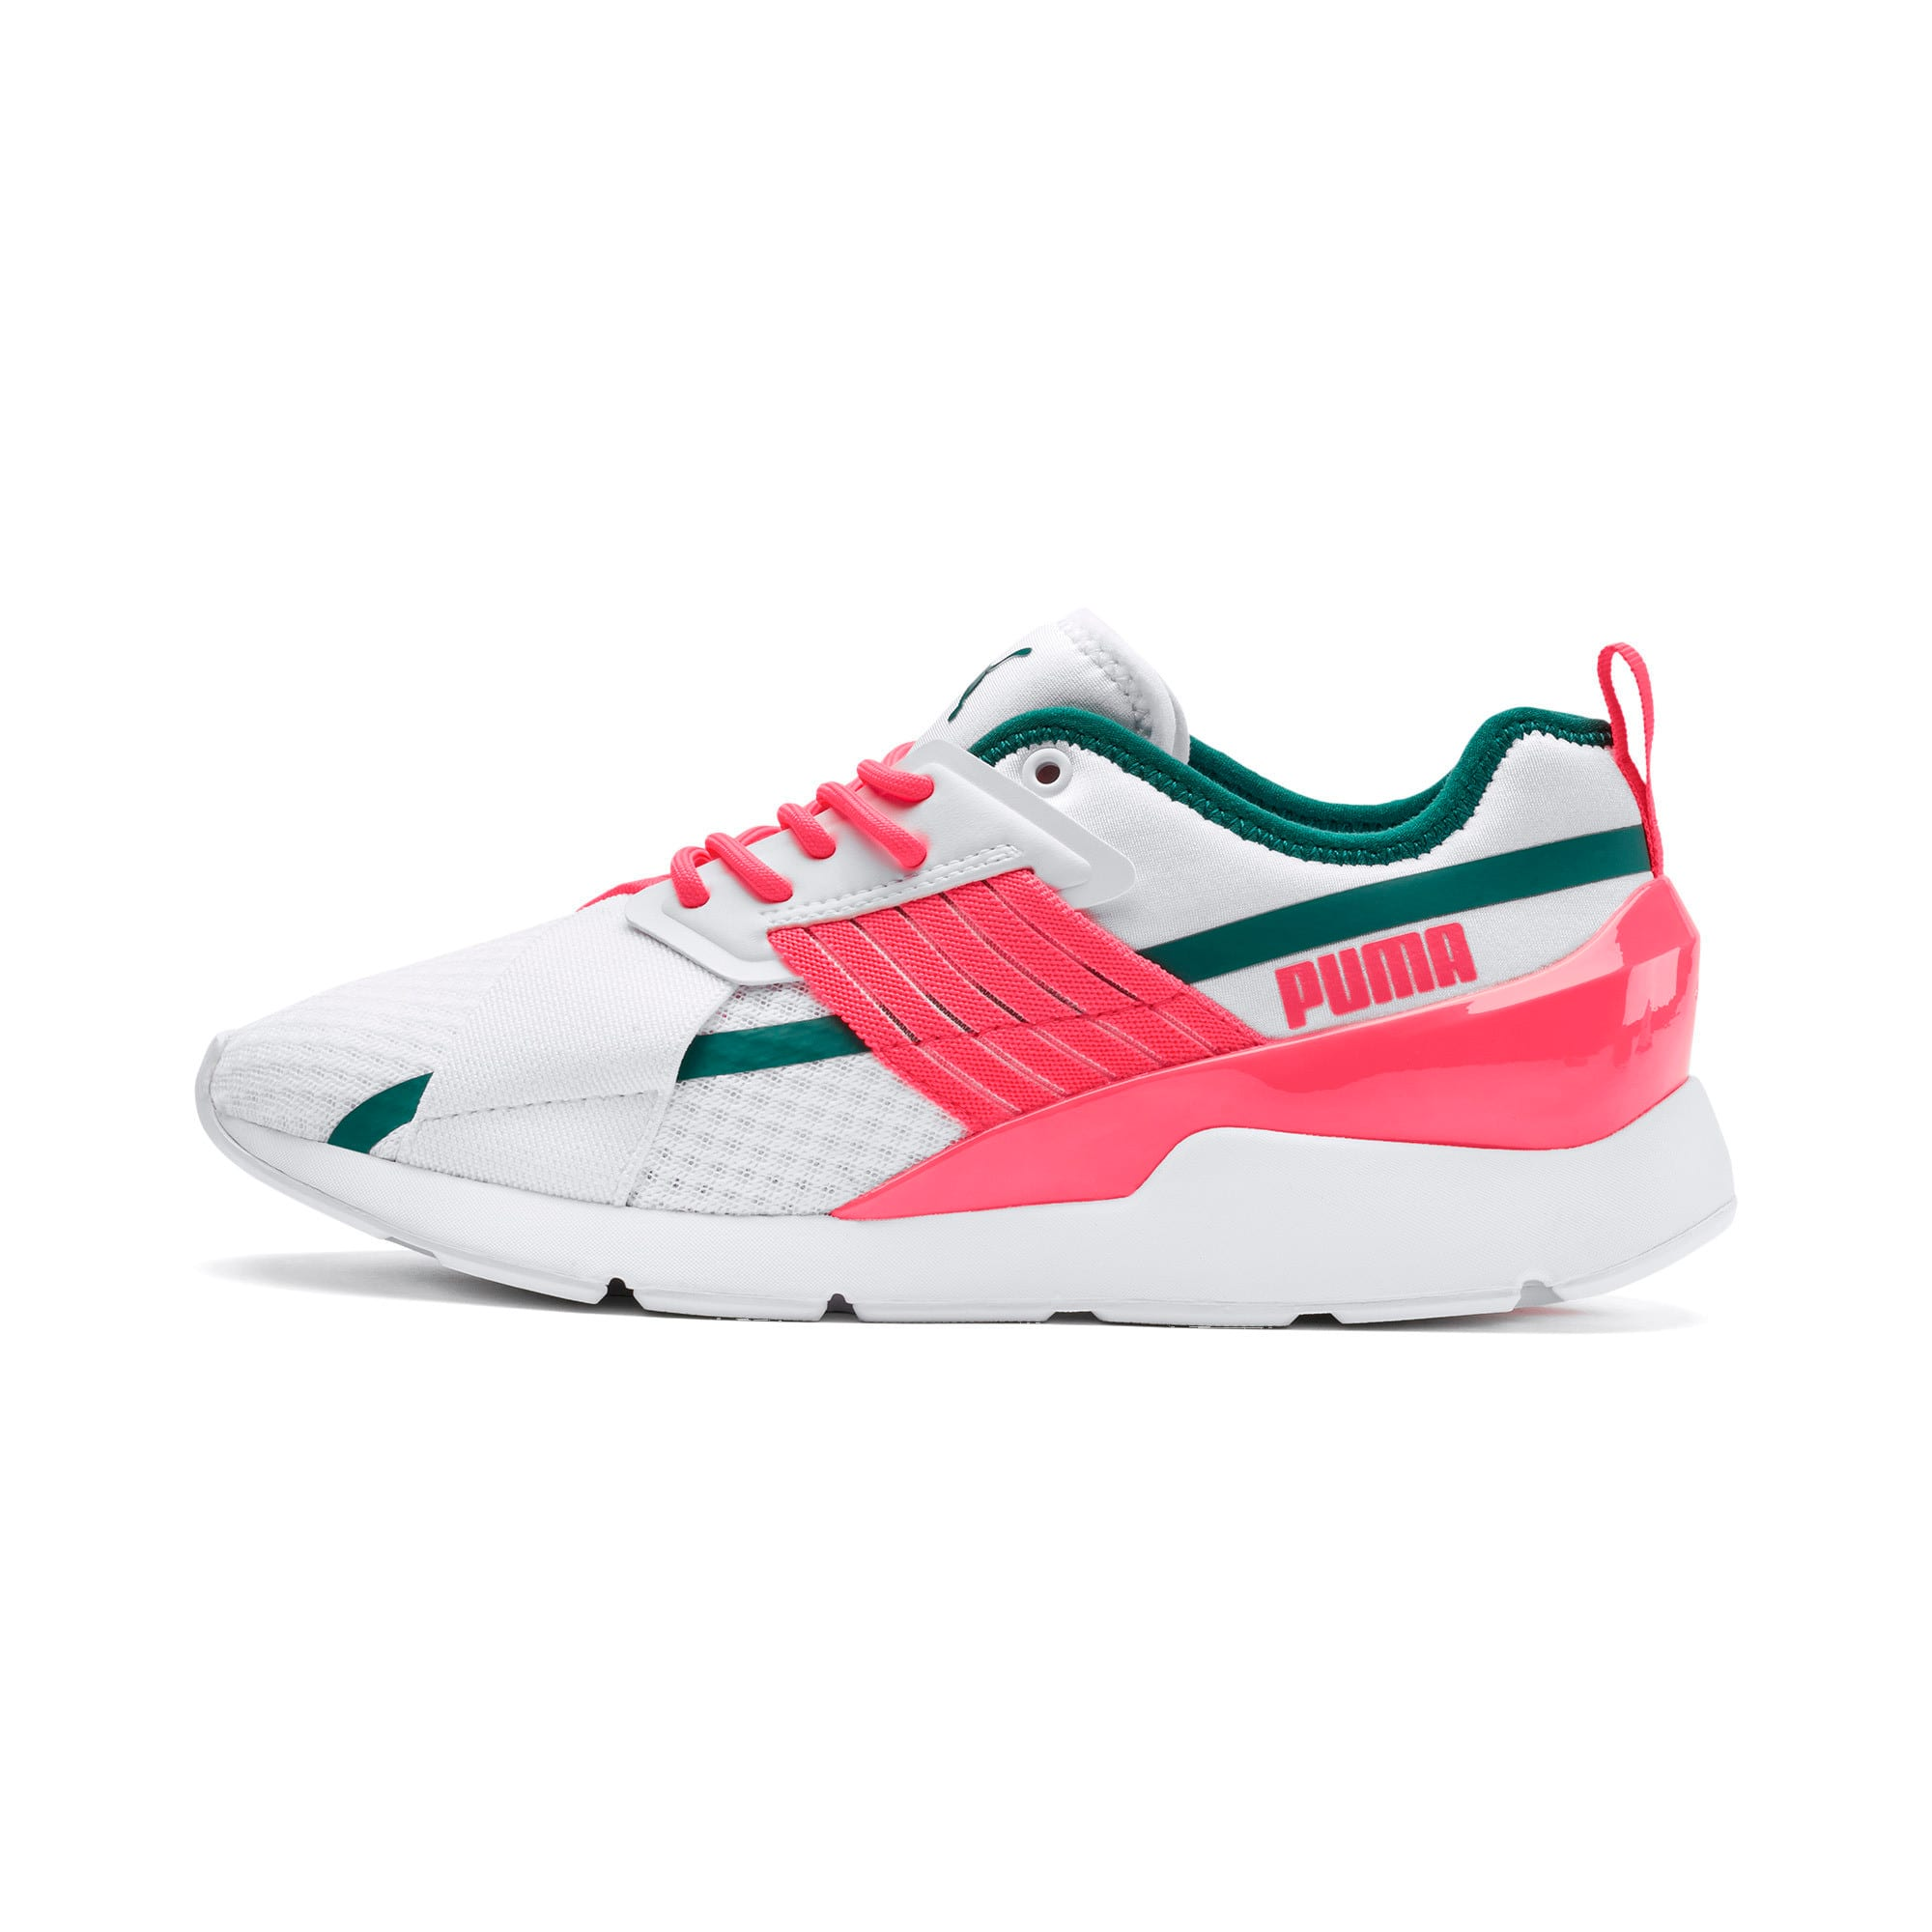 Thumbnail 1 of Muse X-2 Women's Trainers, Puma White-Pink Alert, medium